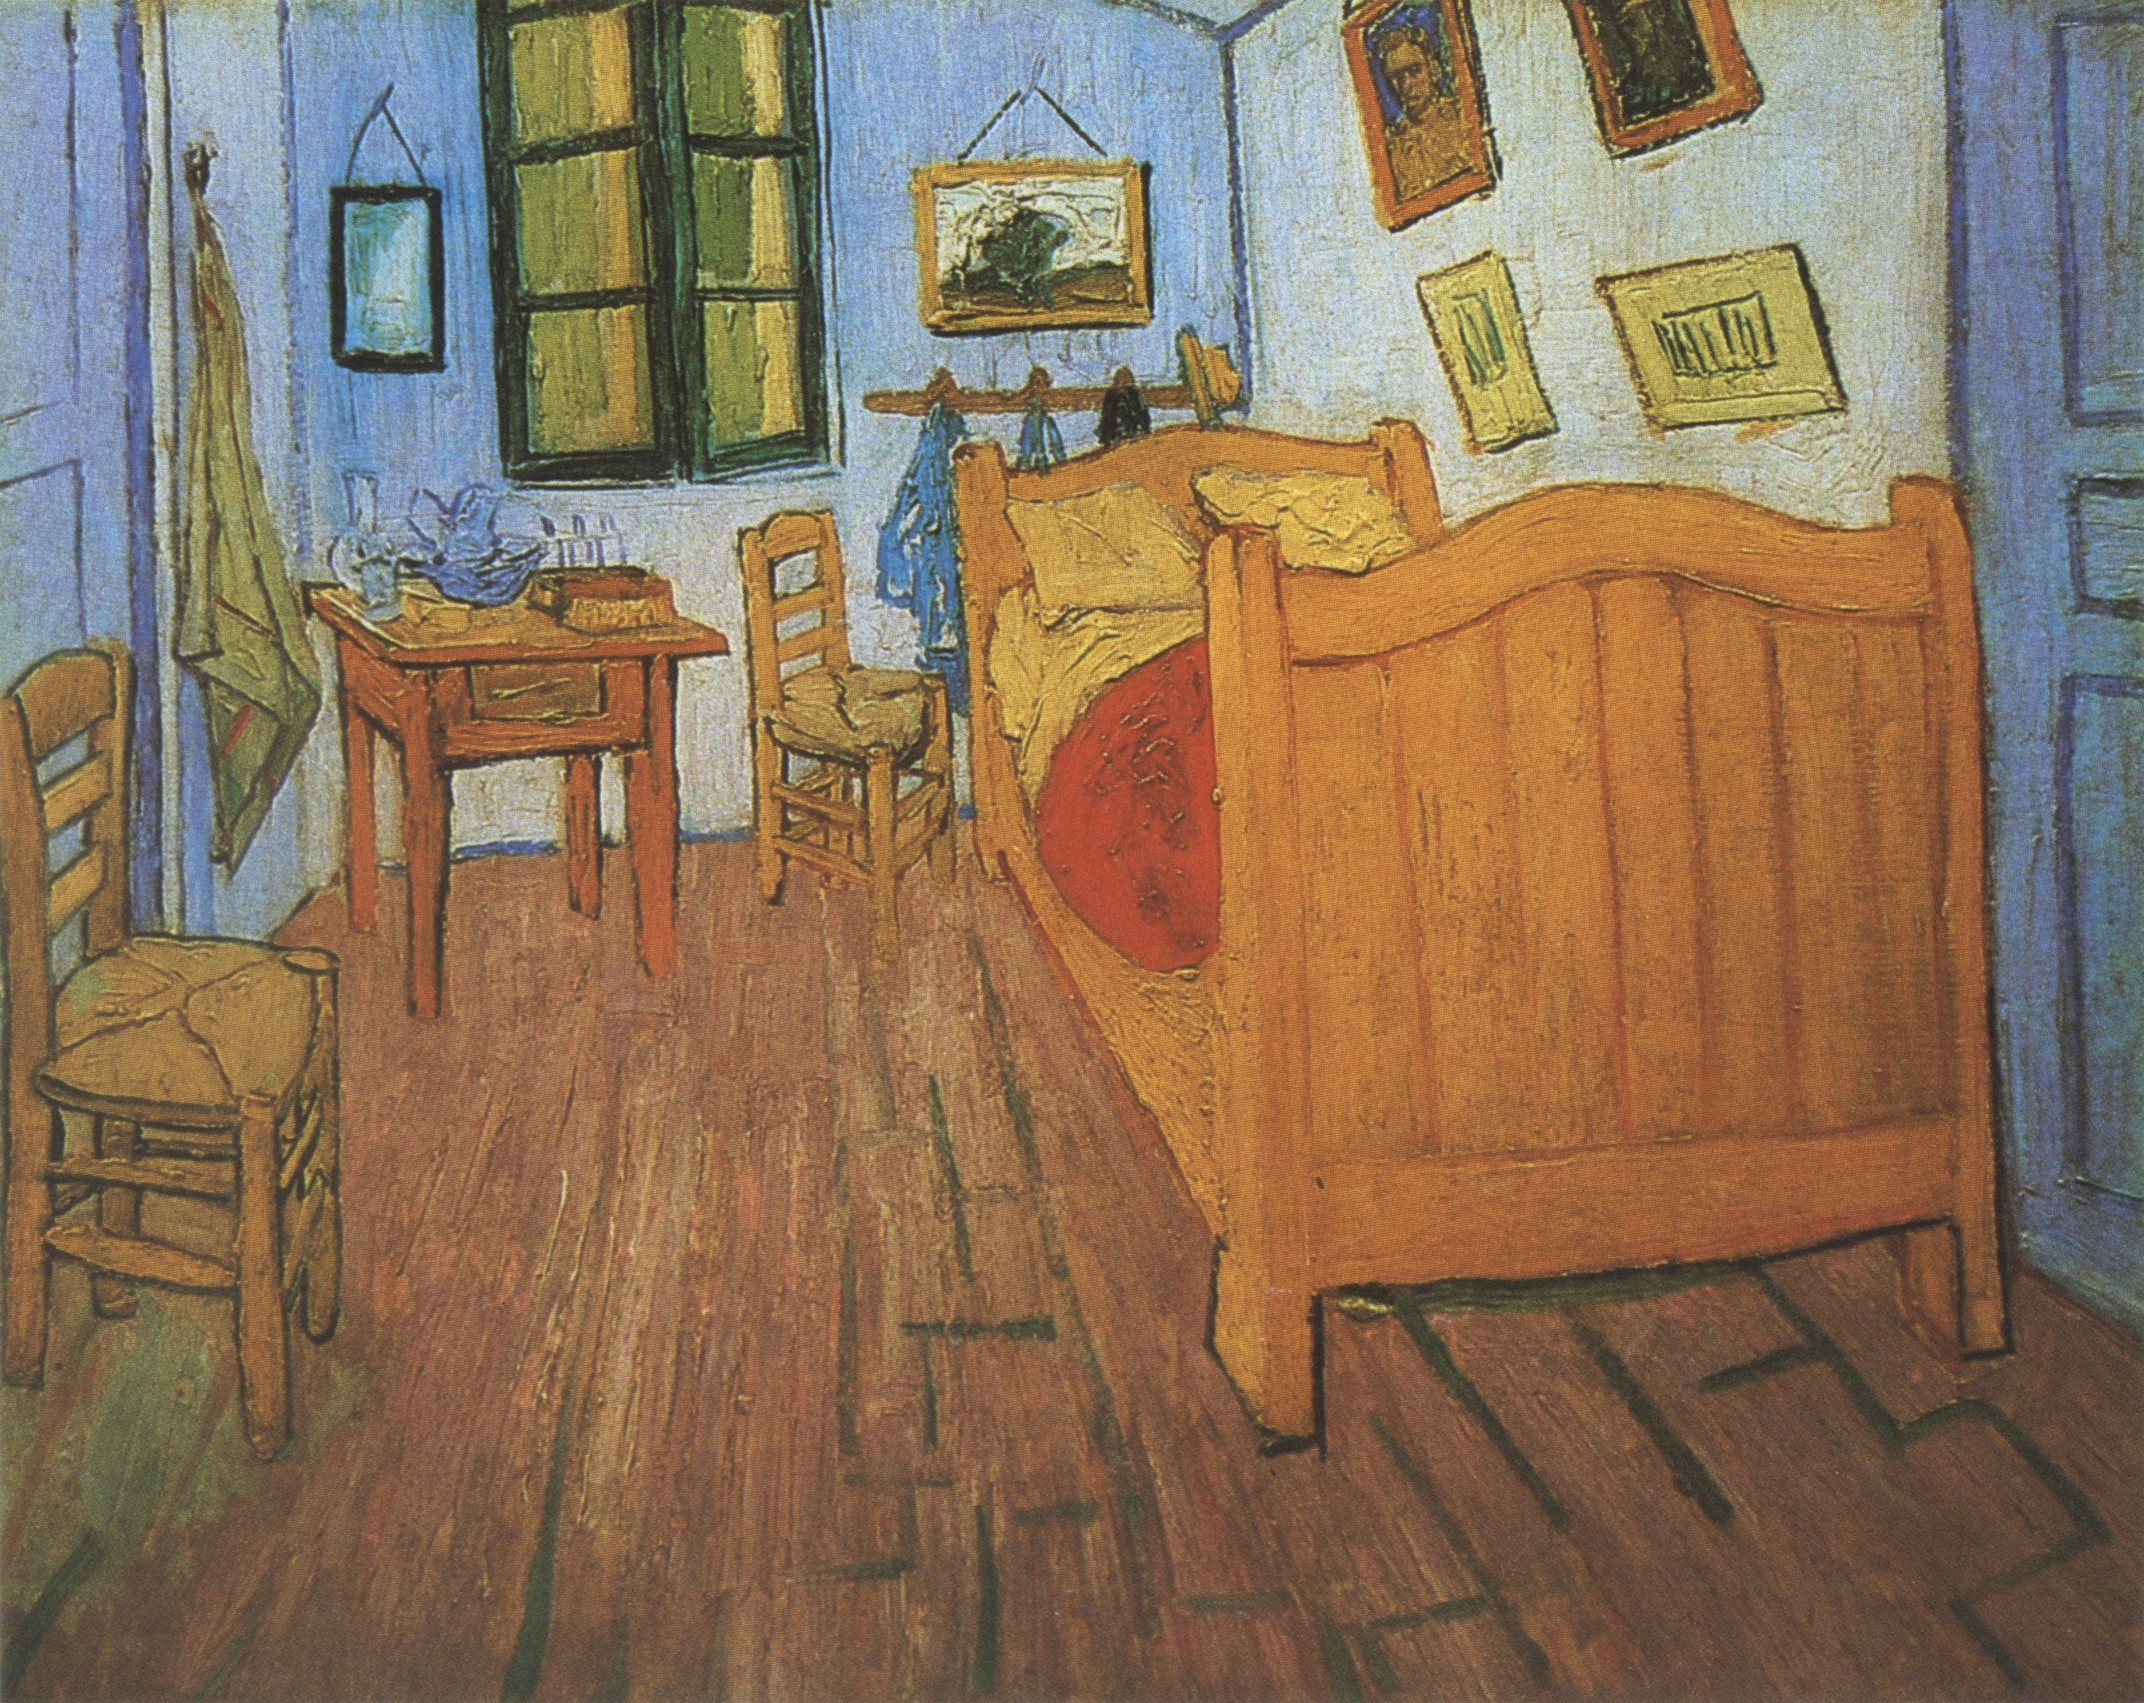 537 Vincent s Bedroom in Arles Arles 1888 • Image Album on the bedroom van gogh, the church at auvers, yellow house, sunday afternoon on the island of la grande jatte, water lilies, vincent van gogh, bedroom van gogh painting oil, room at arles van gogh, van gogh museum, starry night over the rhone, olive trees, bedroom vincent van gogh ppt, room in arles van gogh, wheat field with crows, sesame street bedroom van gogh, wheat fields, cafe terrace at night, bedroom in arles 1889, portrait of dr. gachet, the starry night, self-portraits by vincent van gogh, the potato eaters, church at arles van gogh, bedroom at arles by van gogh, bedroom in arles high resolution,